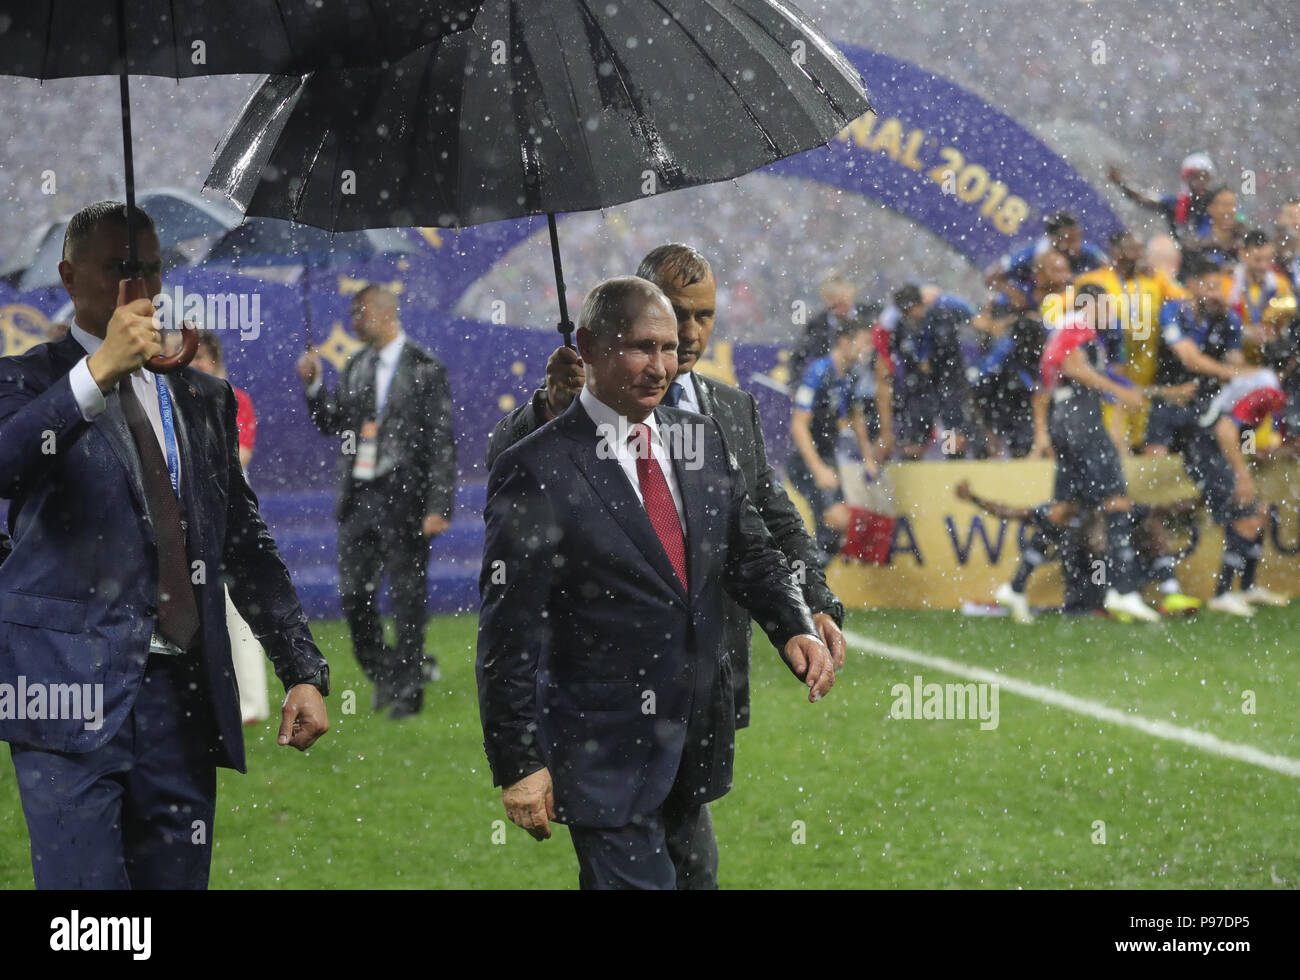 Moscow, Russia. 15th July, 2018. Soccer, World Cup 2018: Final game, France vs. Croatia at the Luzhniki Stadium. Vladimir Putin (L), President of Russia, under an umbrella in the pouring rain after the France's victory. Credit: Christian Charisius/dpa/Alamy Live News - Stock Image